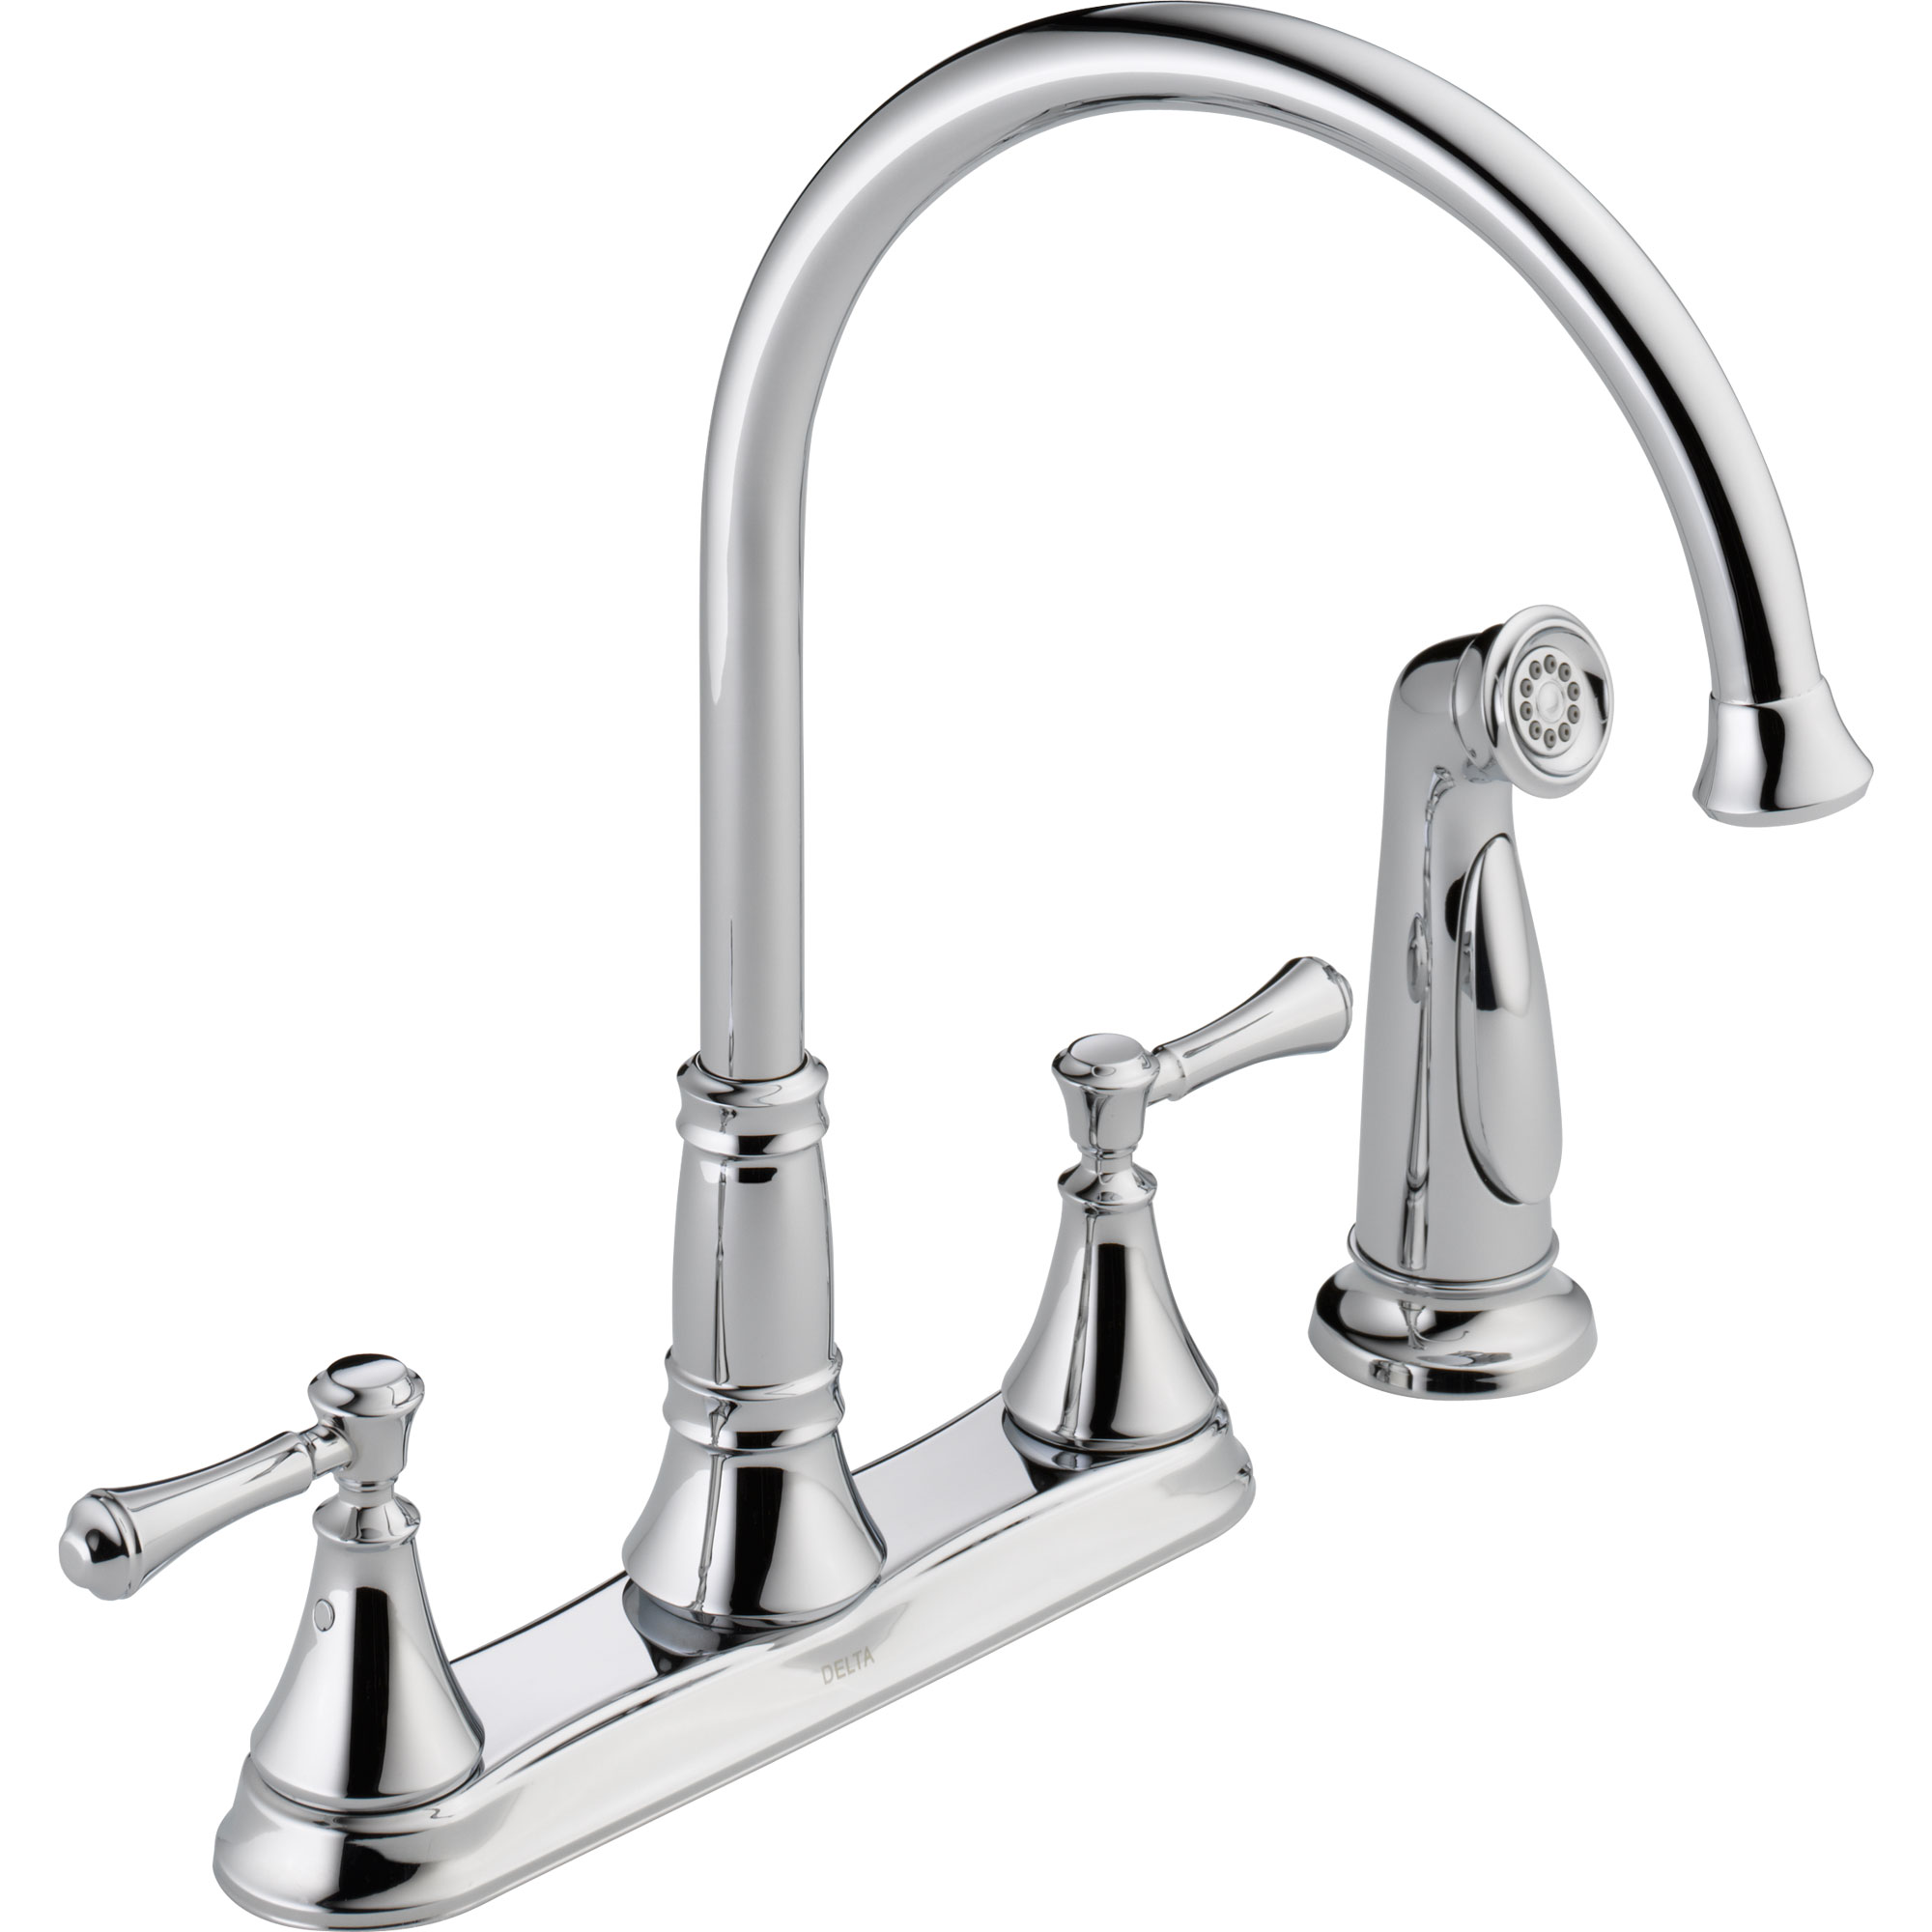 Exciting Delta Cassidy Kitchen Faucet for Kitchen Faucet Ideas: Brilliant Delta Cassidy Kitchen Faucet For Kitchen Faucet Ideas With Delta Single Handle Kitchen Faucet With Spray